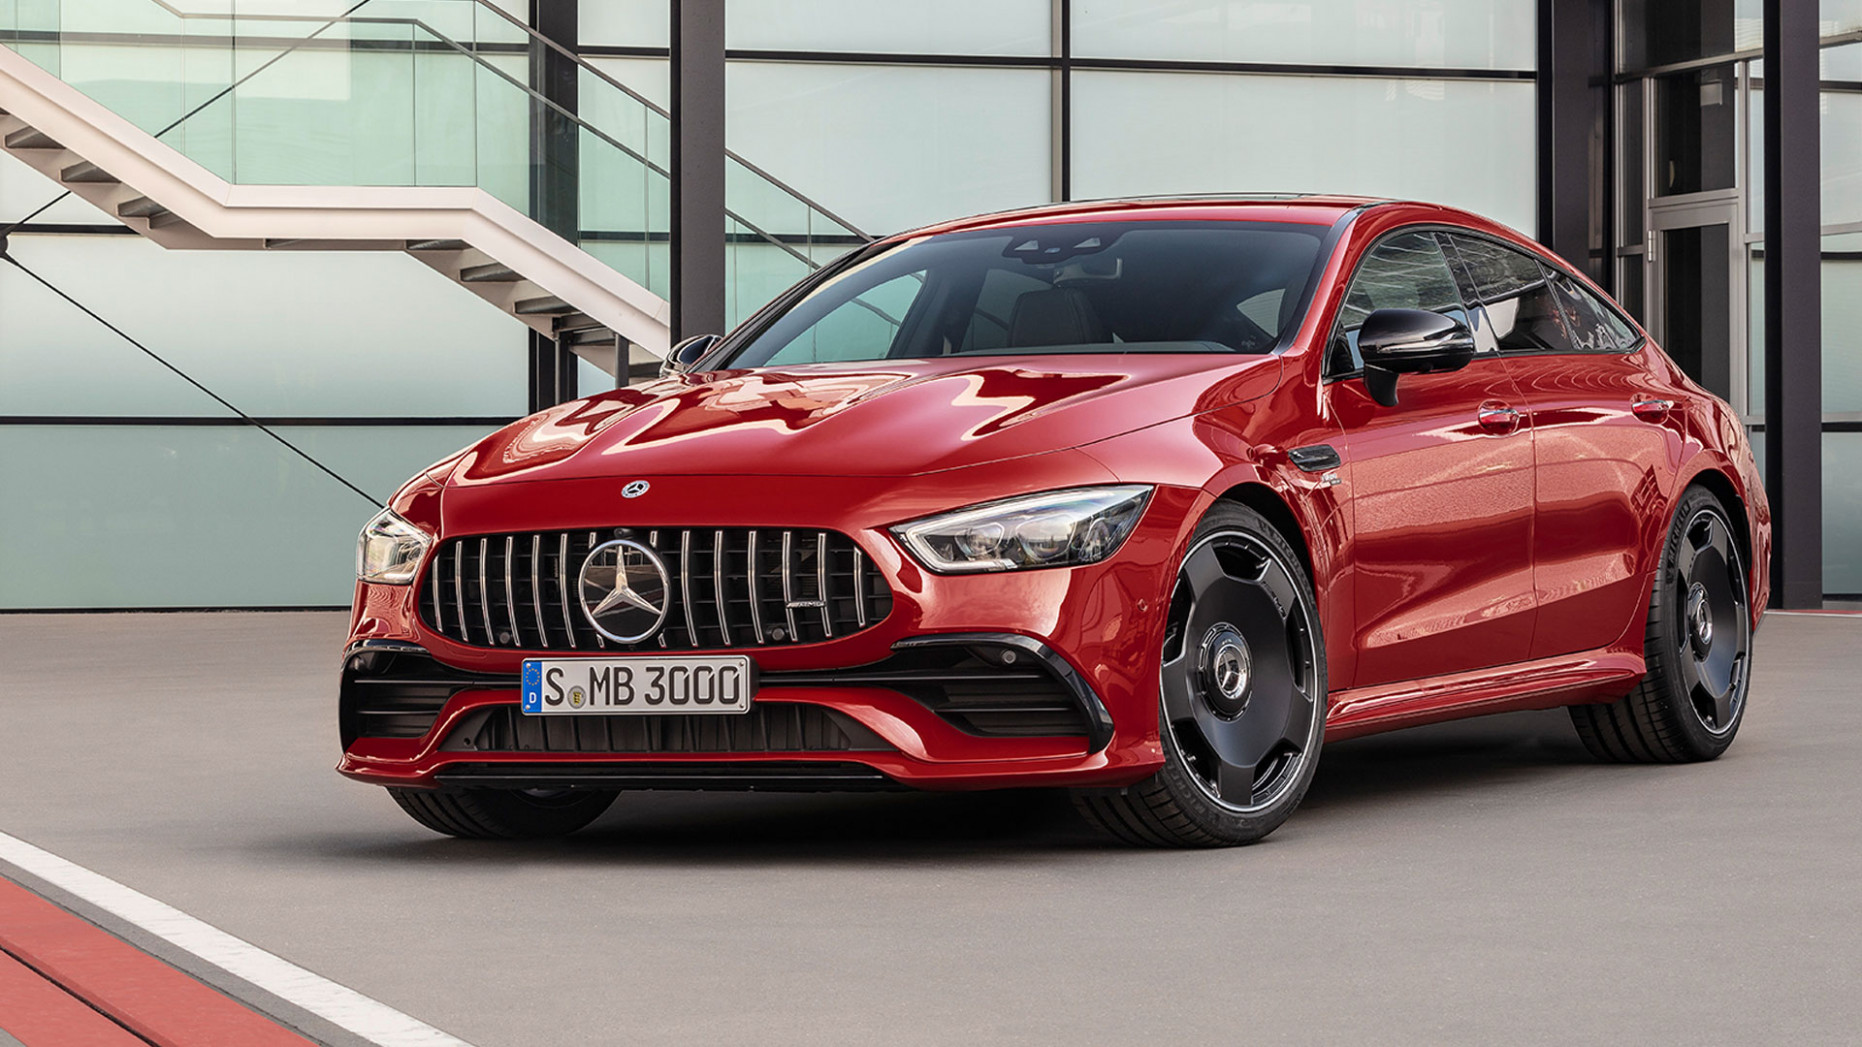 Mercedes-AMG GT 8 8MATIC+ 8-door Coupé - 2020 mercedes amg gt 4 door coupe